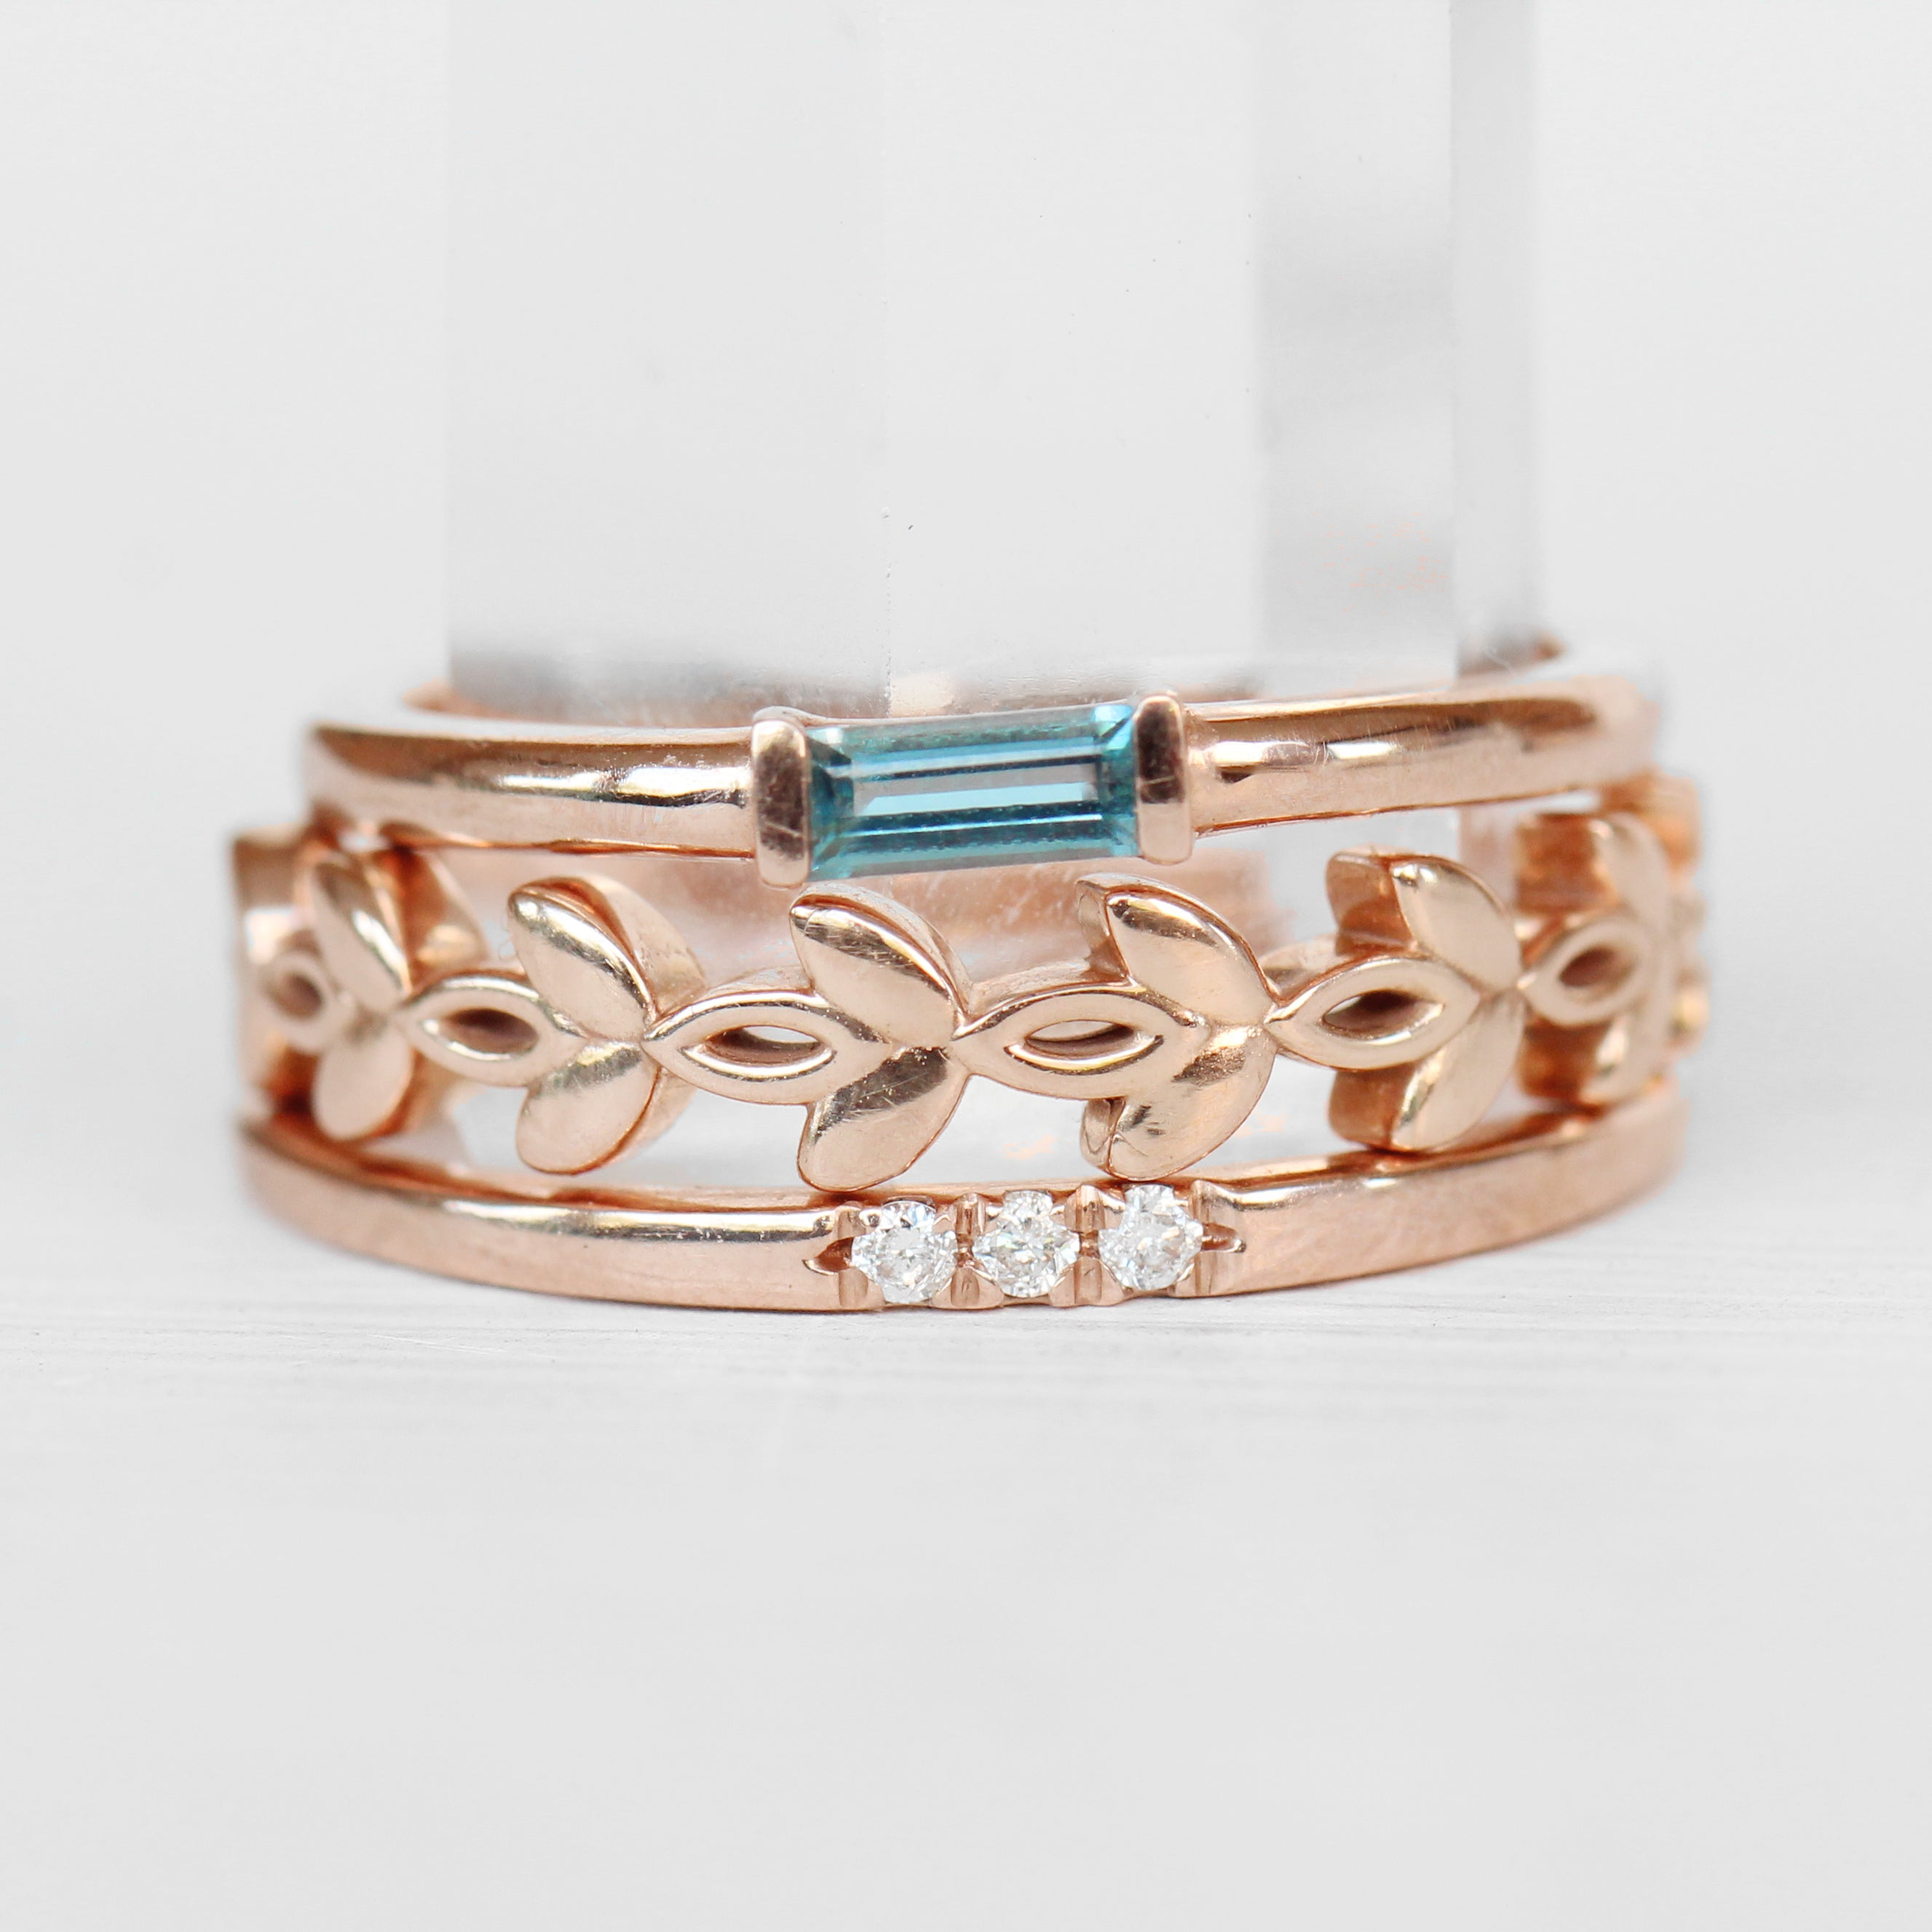 Yael Minimal Baguette Ring - London Blue Topaz Band Stackable Ring in Your Choice of 14k Gold - Midwinter Co. Alternative Bridal Rings and Modern Fine Jewelry